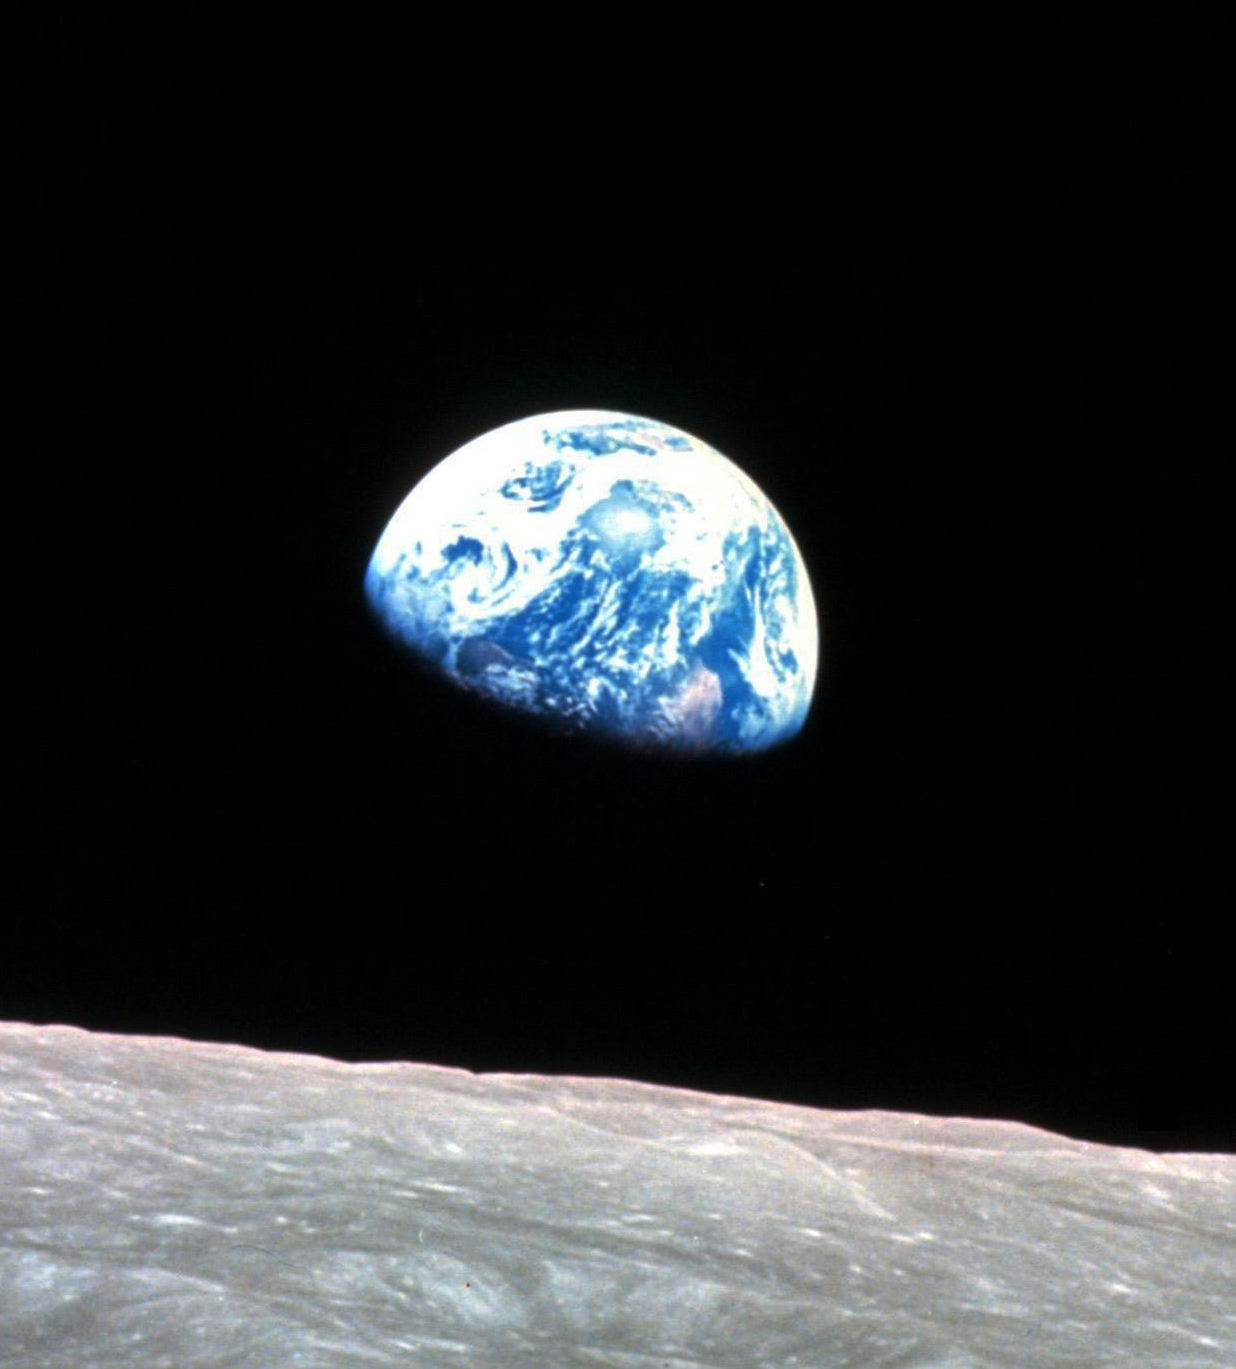 Caption: Earthrise, NASA image AS08-14-2383, taken by astronaut William Anders during the Apollo 8 mission